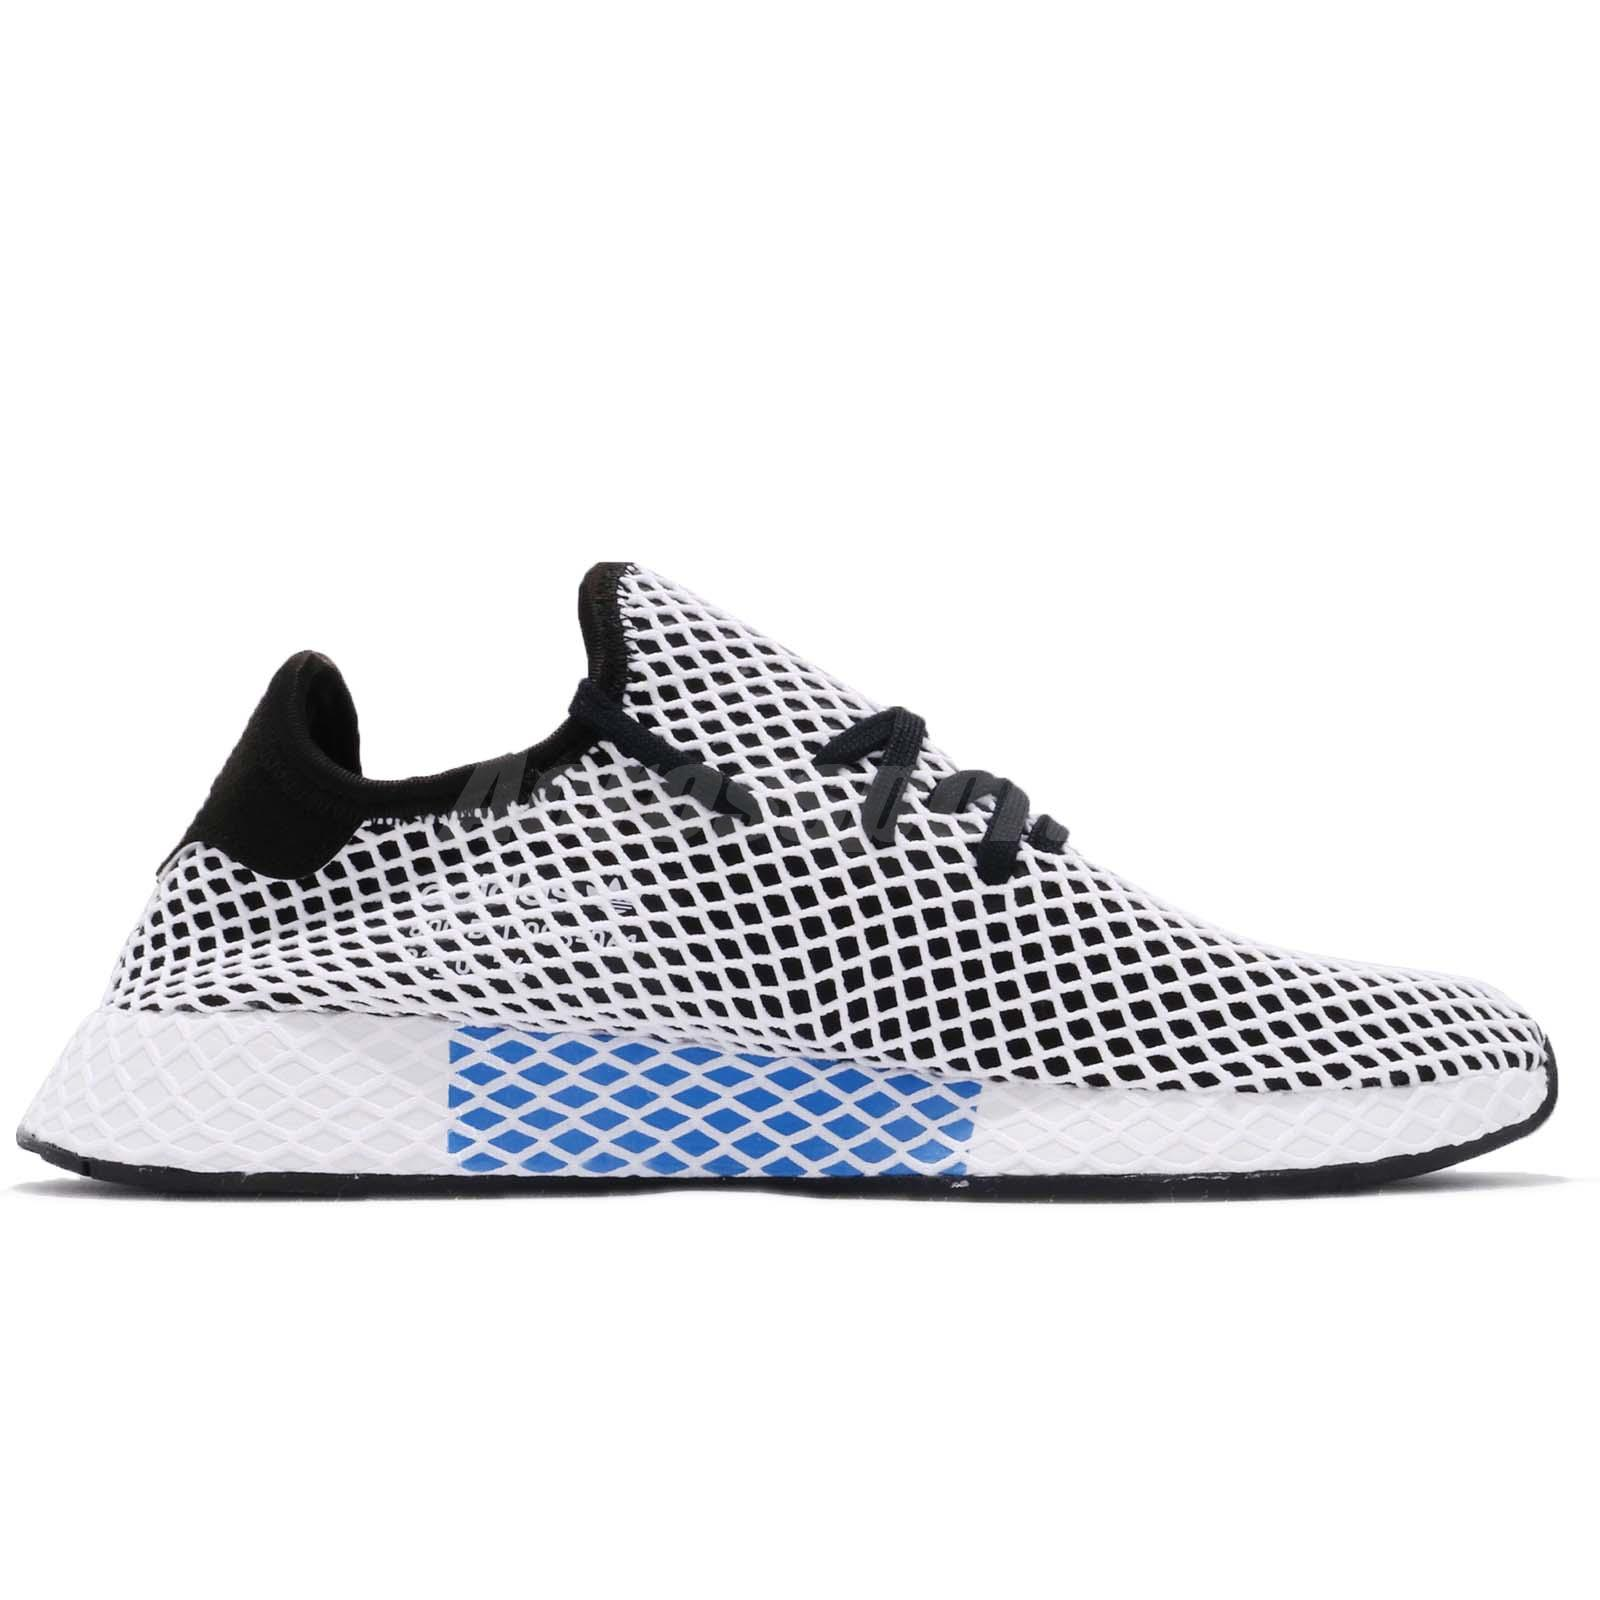 5820efacf adidas Originals Deerupt Runner Black White Men Running Shoes ...